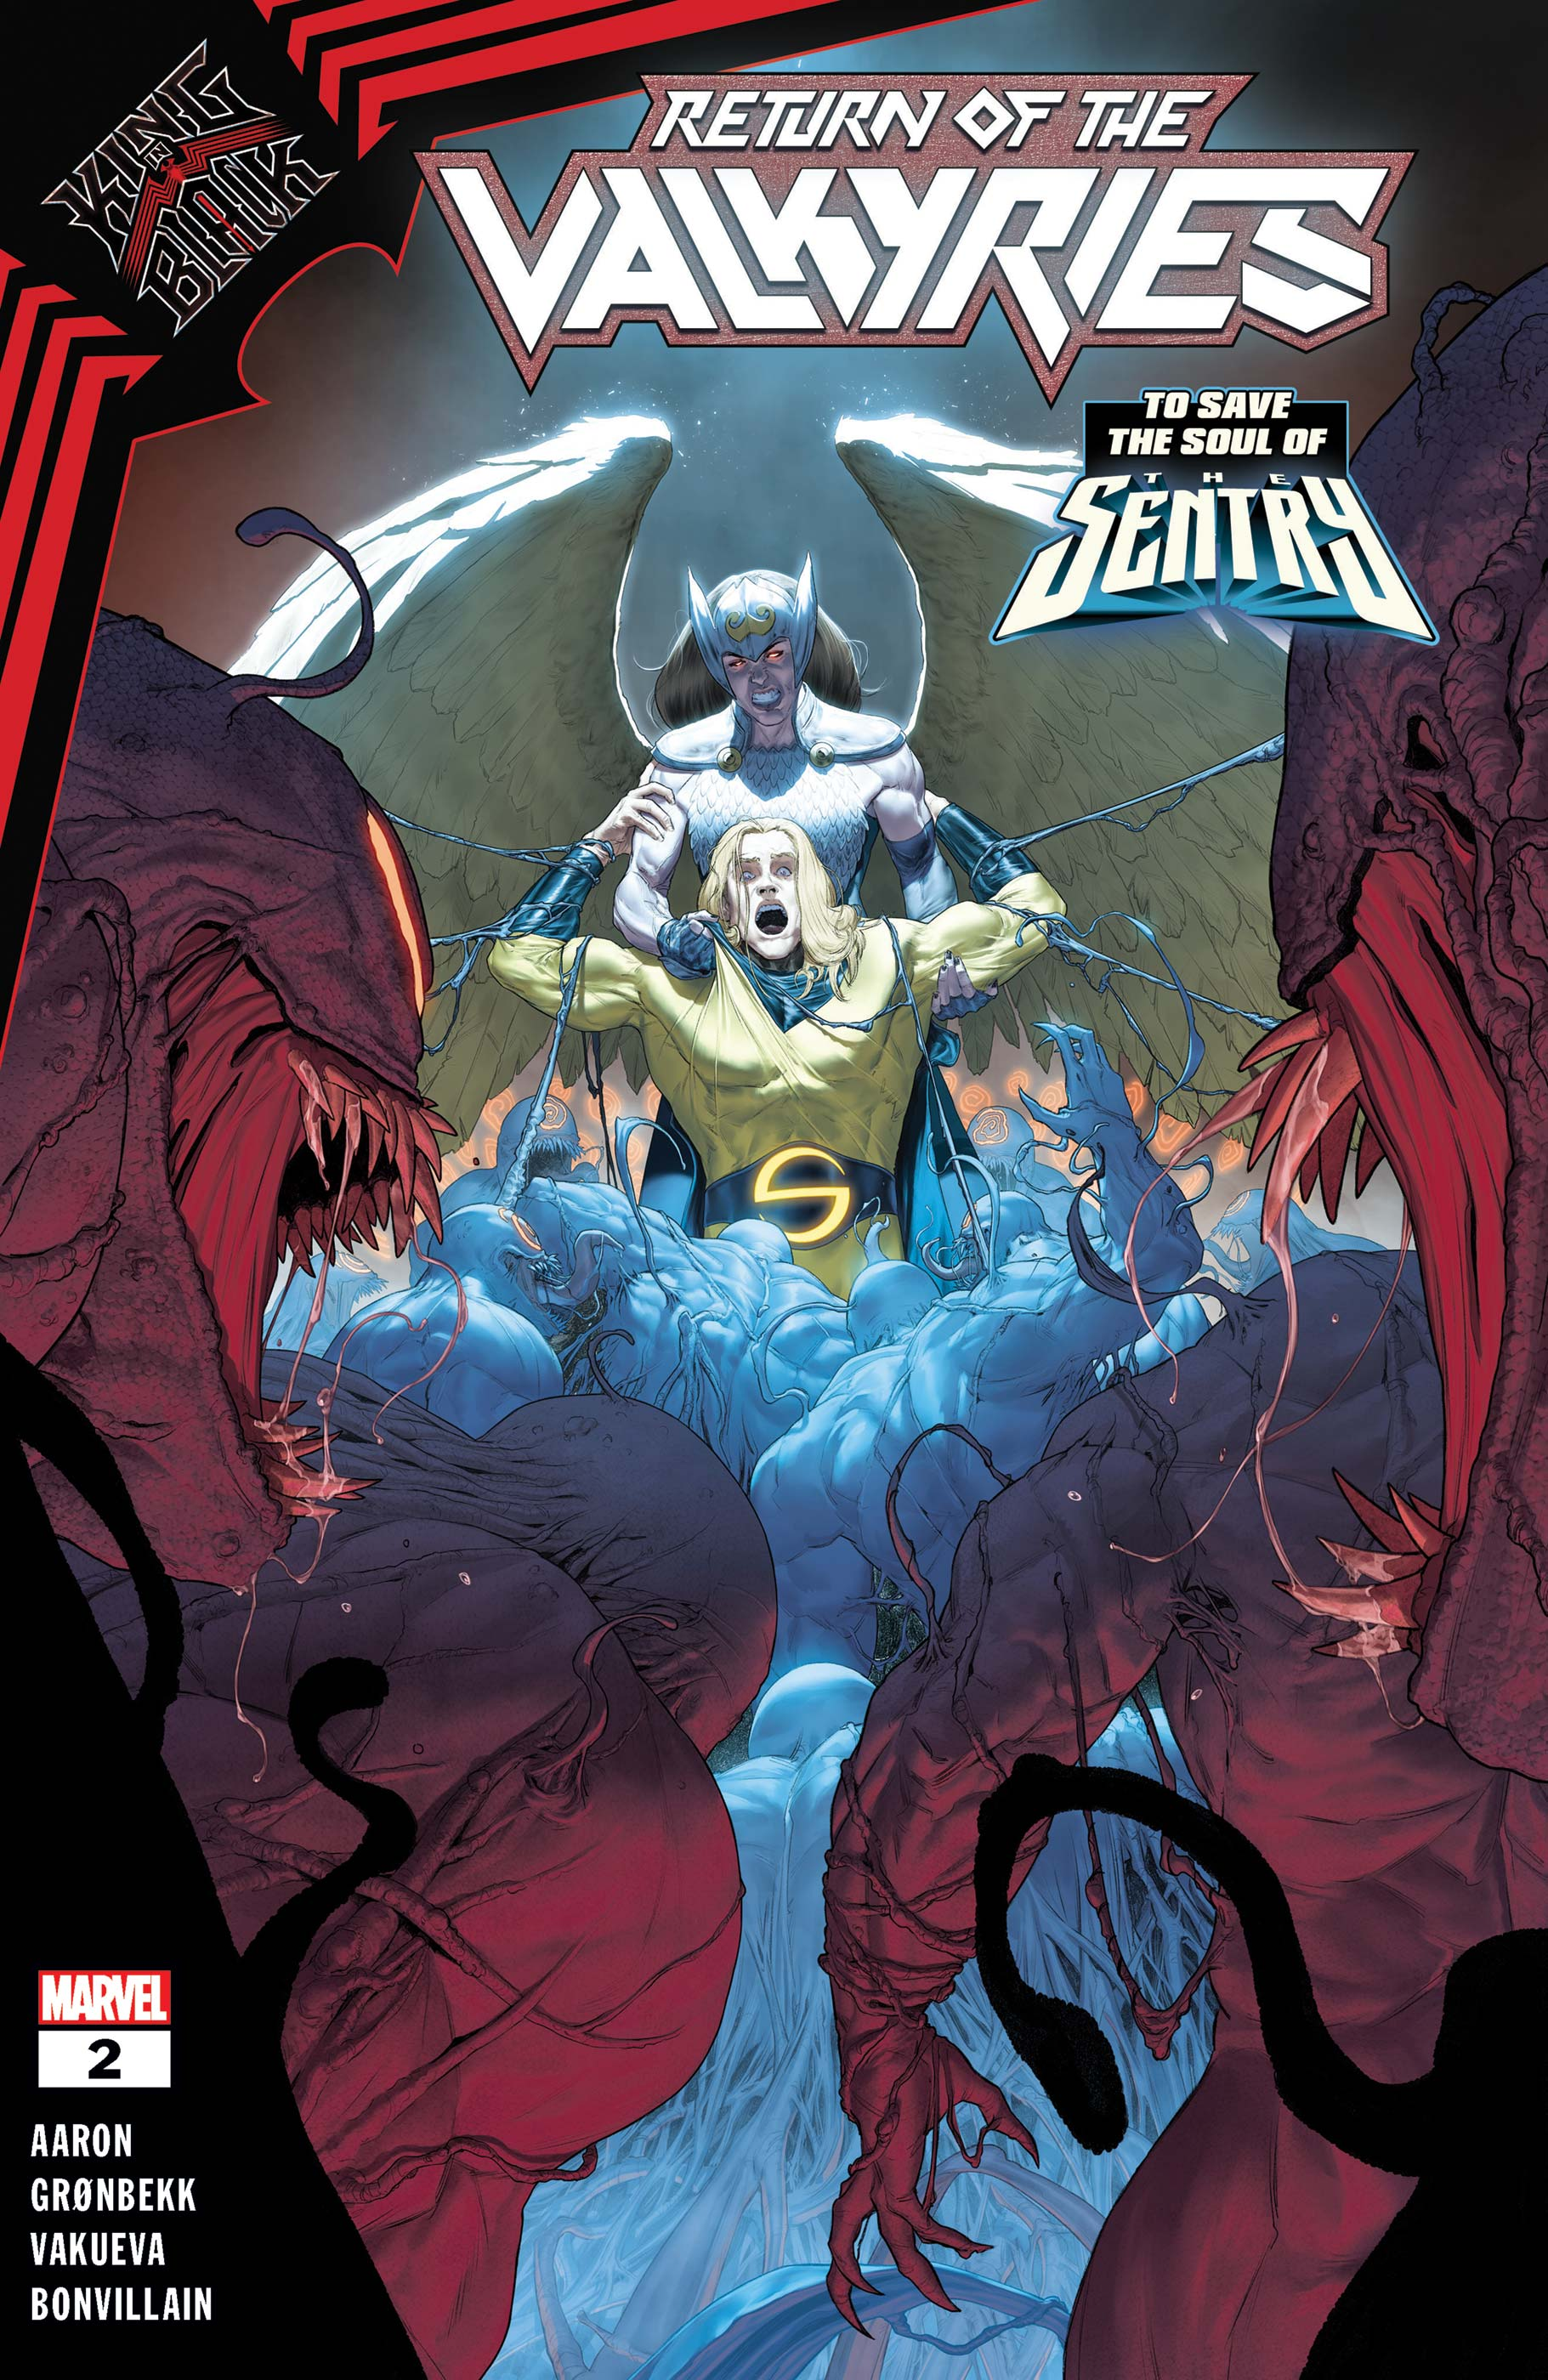 King in Black: Return of the Valkyries (2021) #2